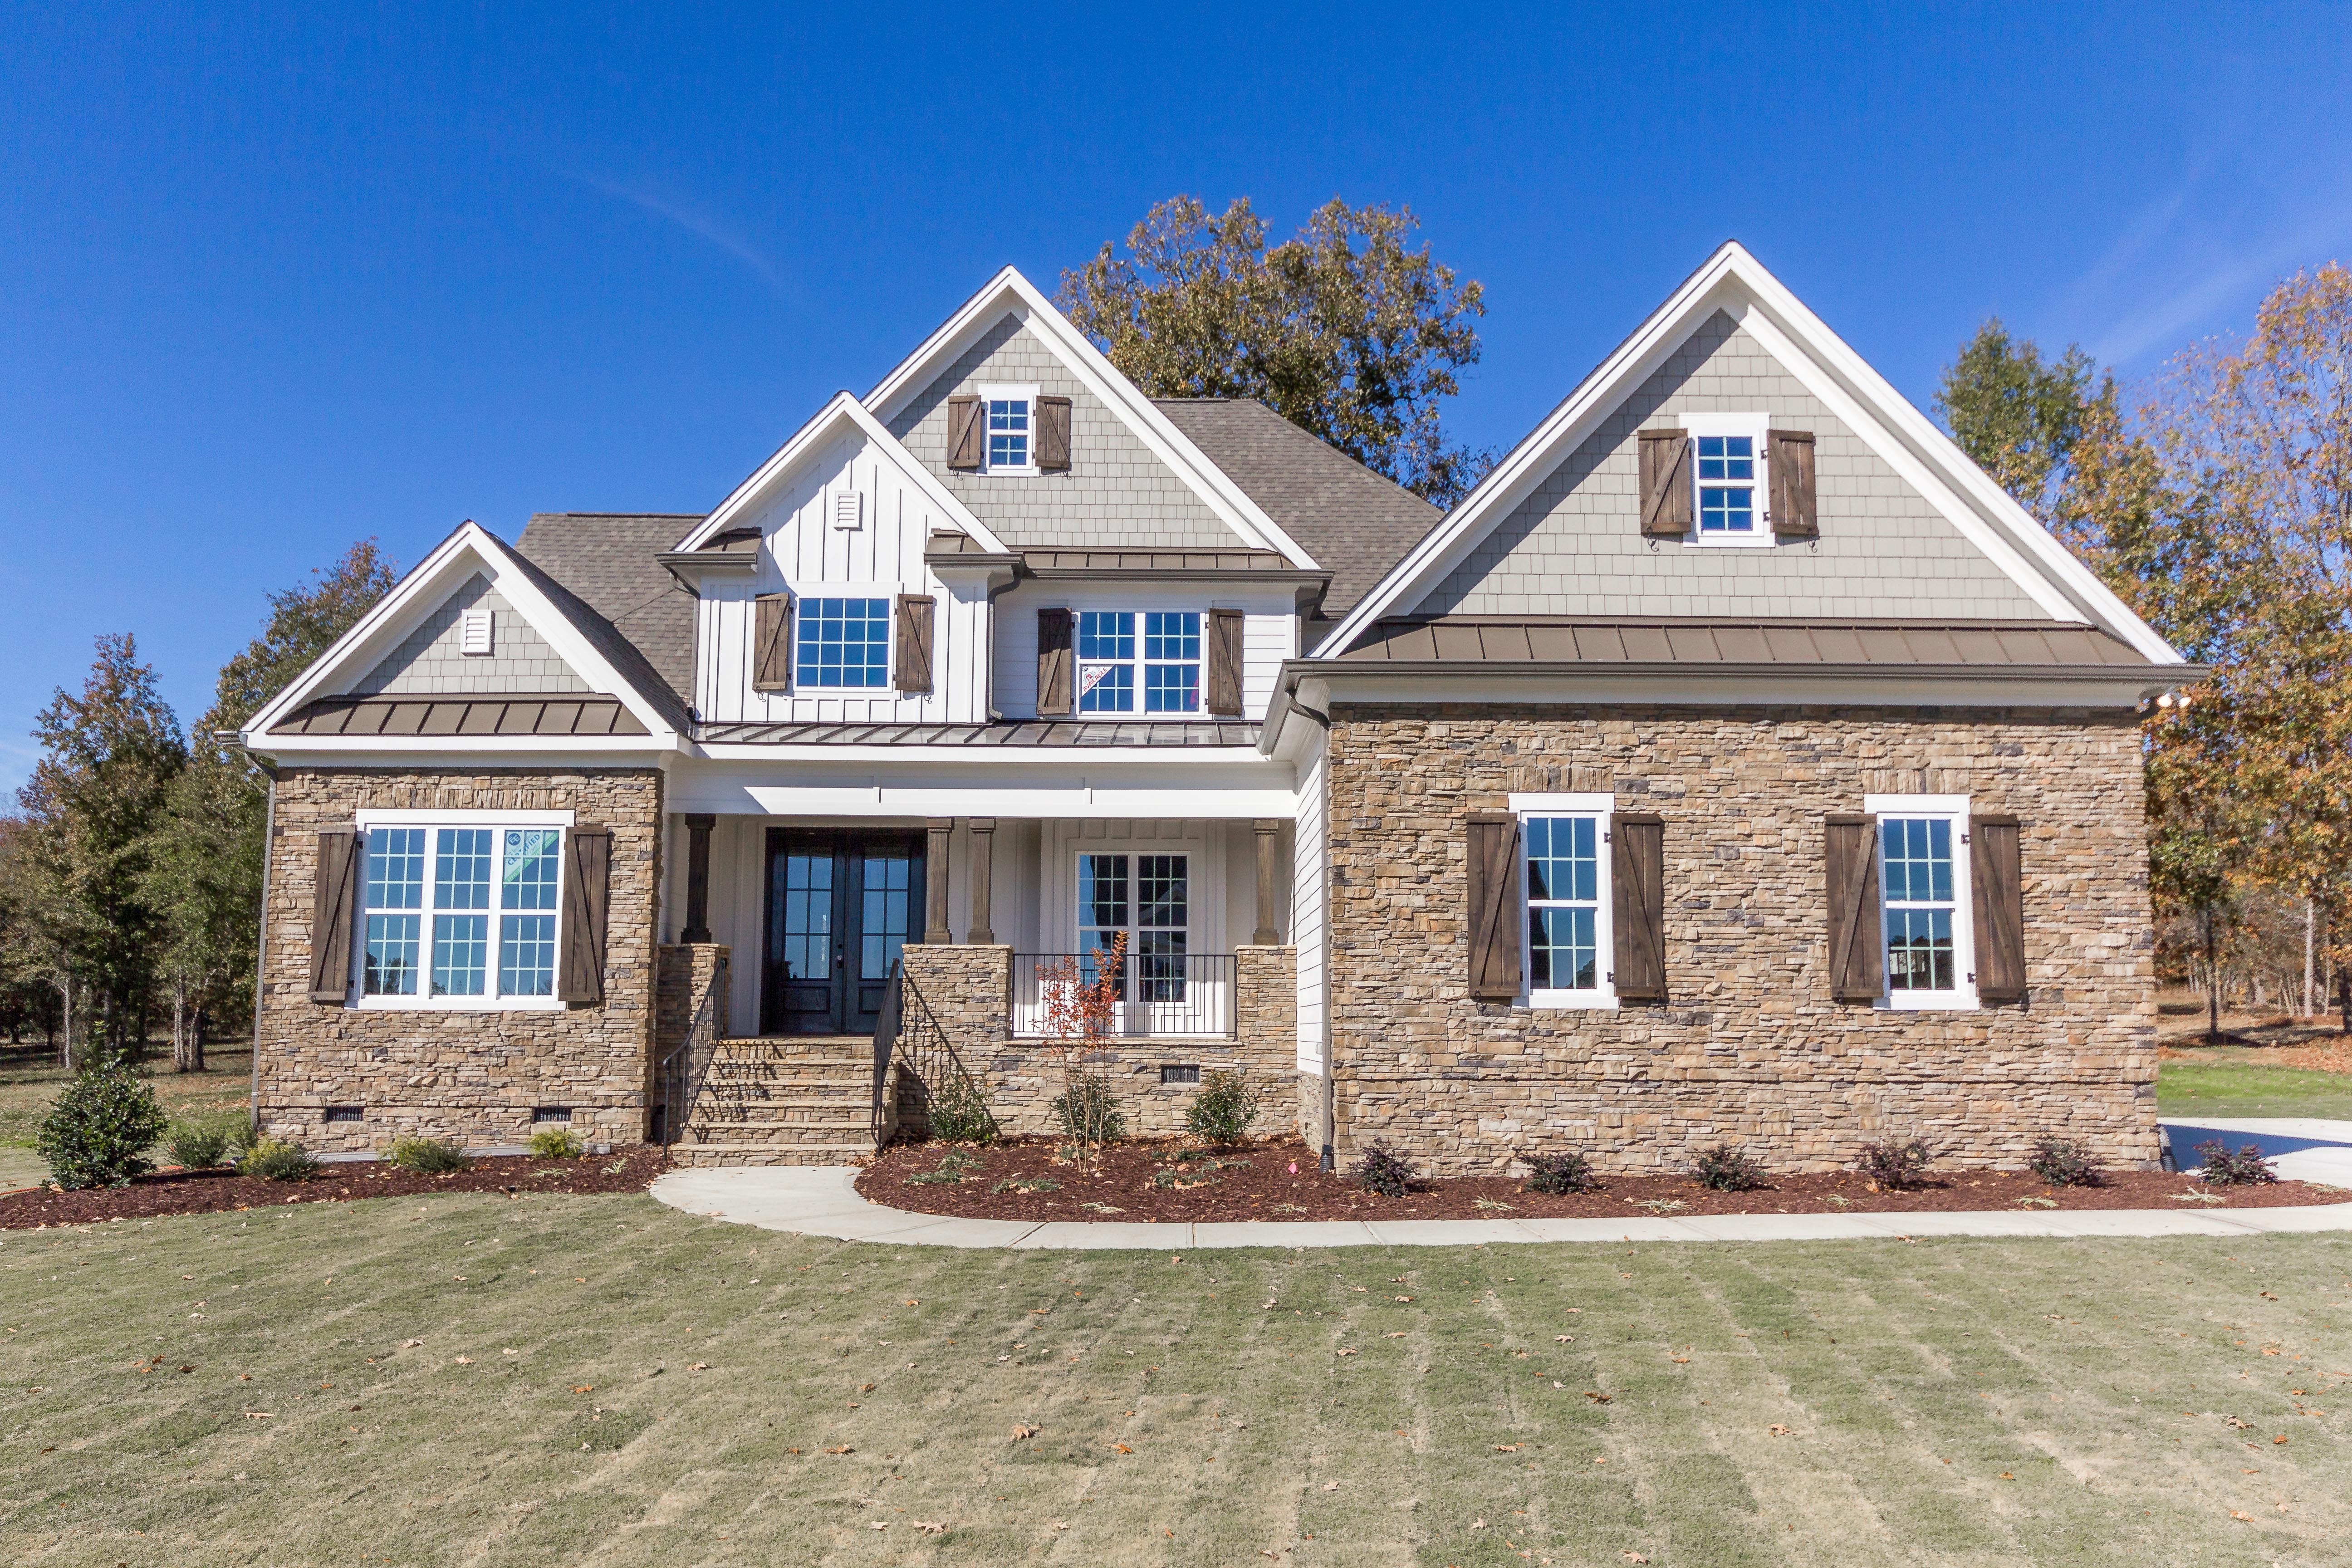 Southview Homes builders in North Carolina